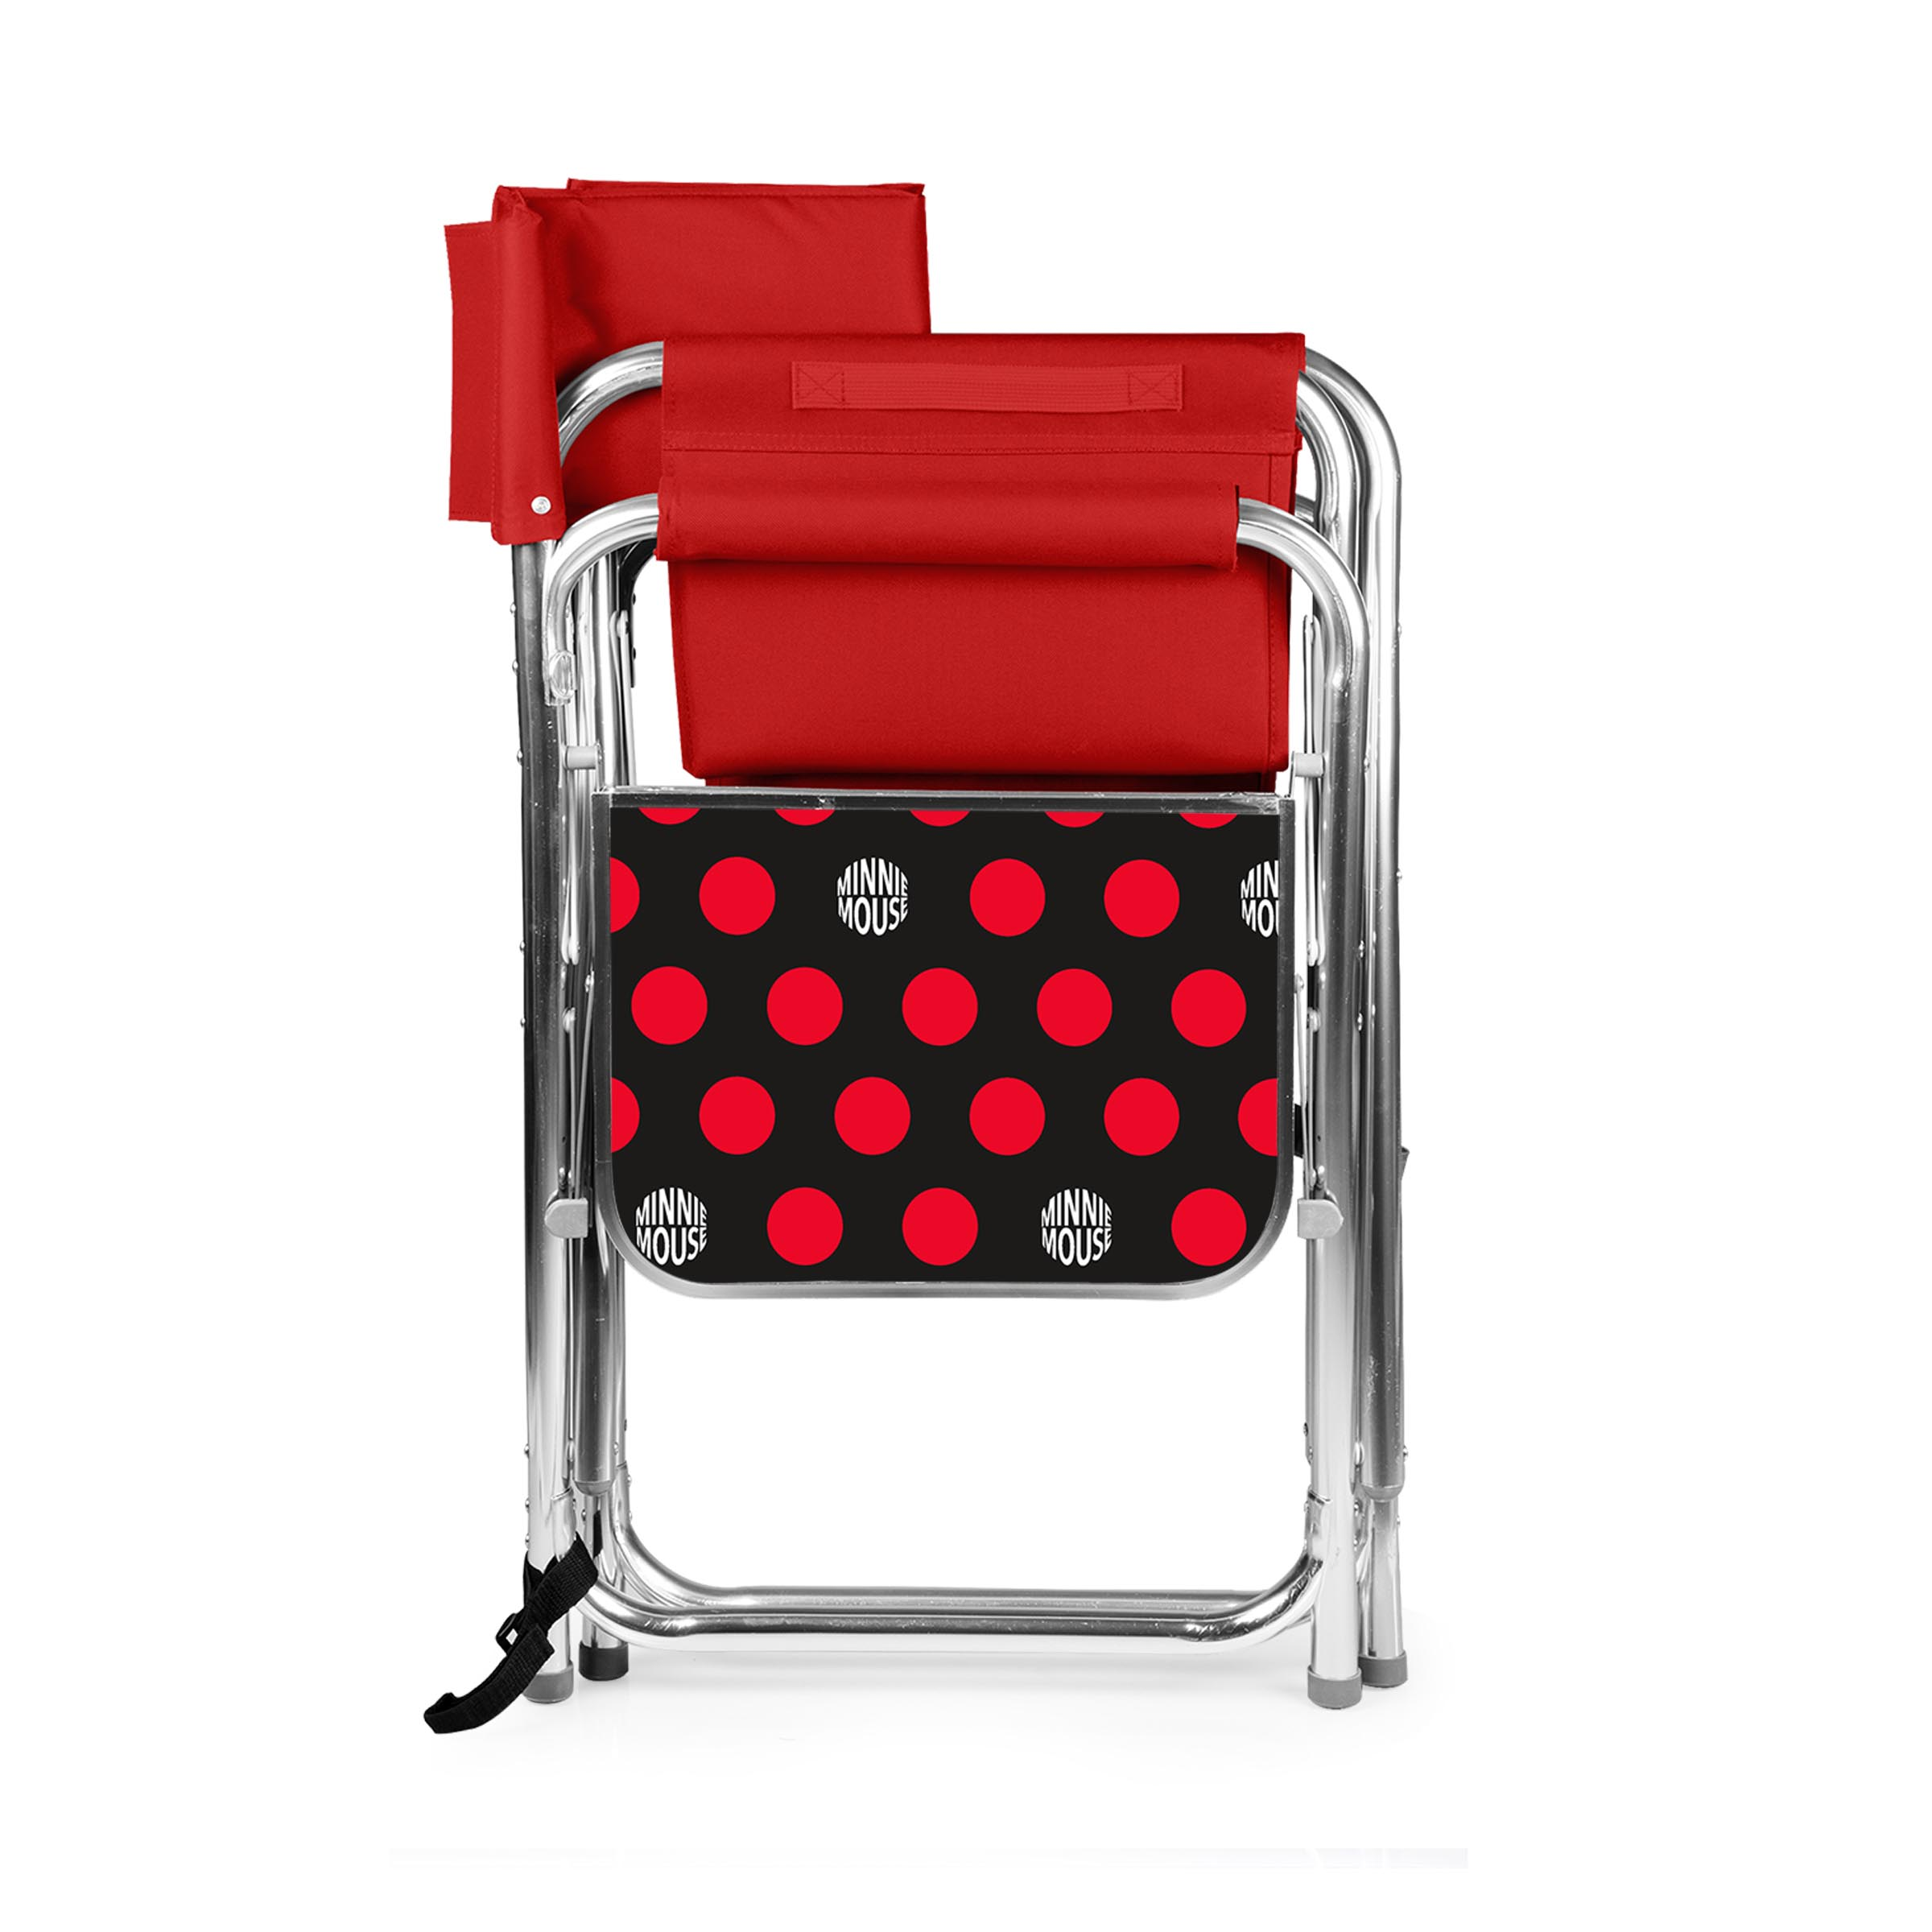 minnie mouse folding chair drexel dining chairs sports by picnic time red family of brands